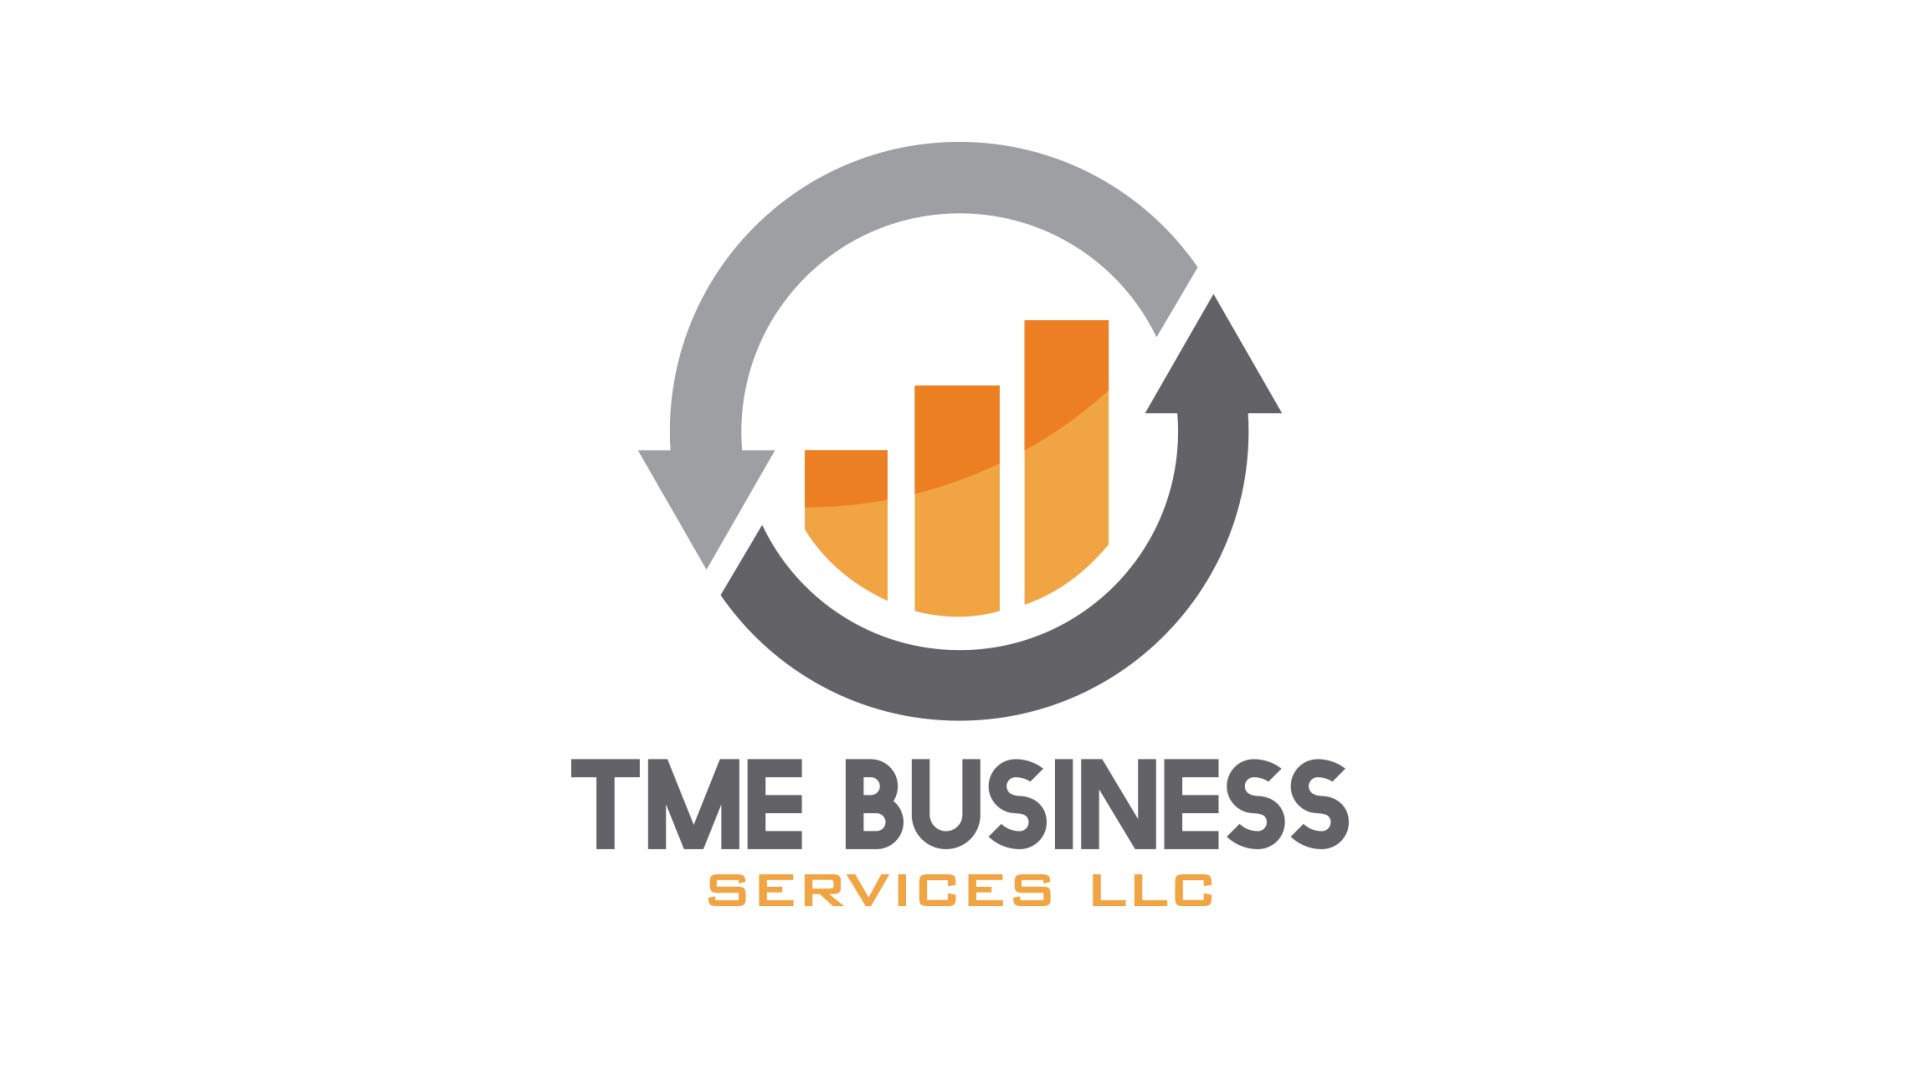 TME Business Services, LLC